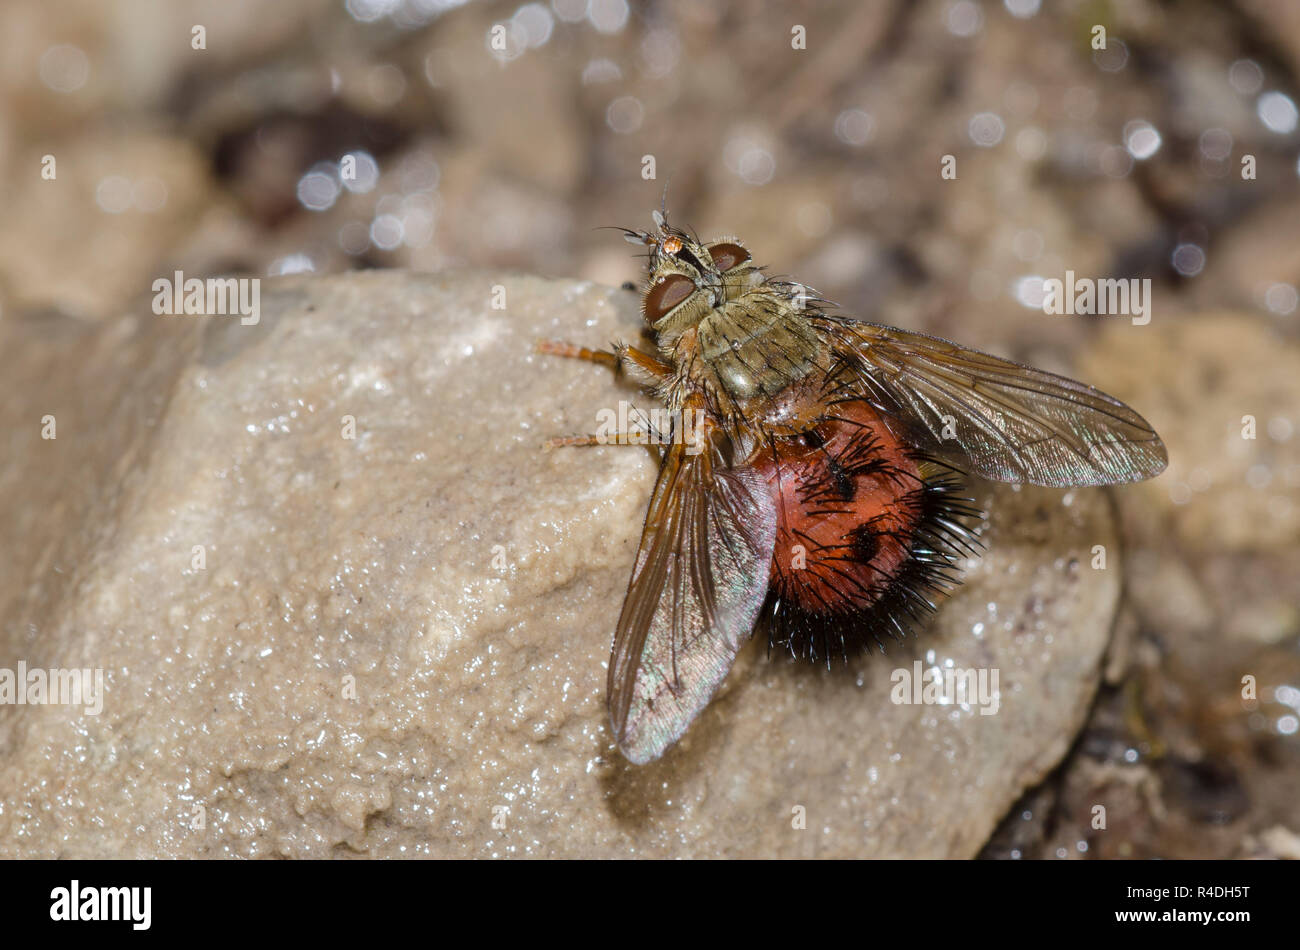 Tachinid Fly, Hystricia abrupta Stock Photo